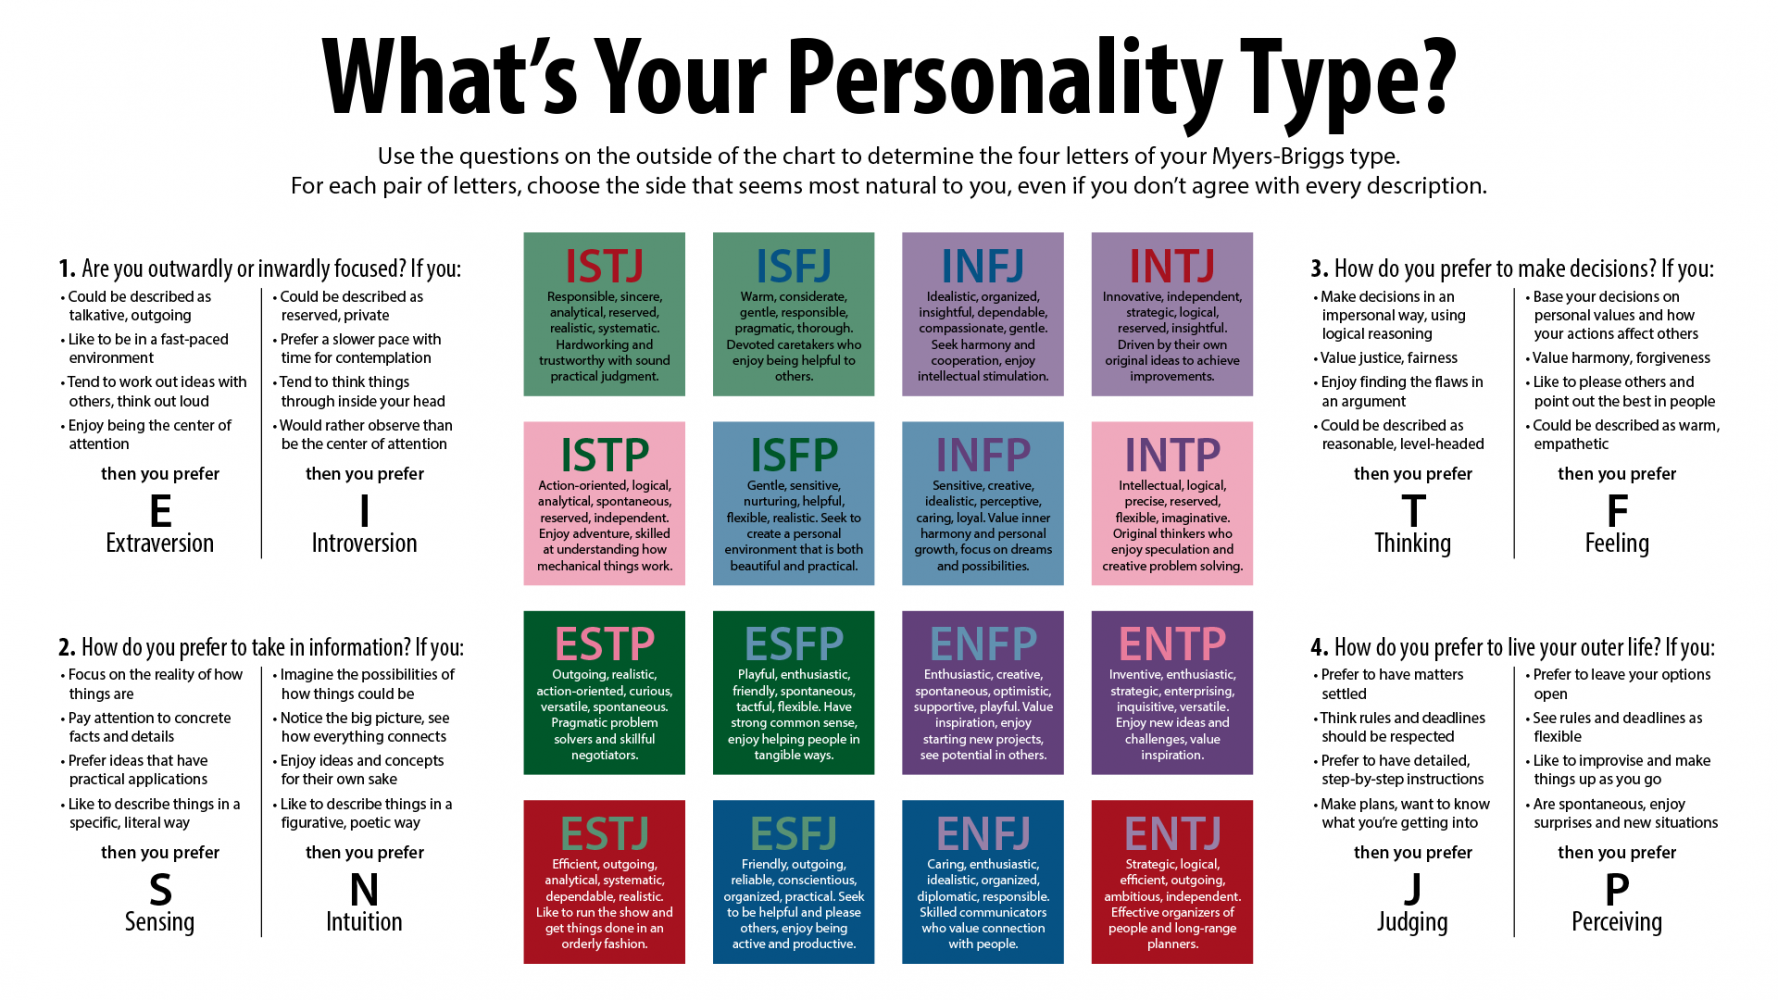 an evaluation of the myers briggs type indicator Myers-briggs type indicator® profile kristin nelson / esfj october 10, 2014 this profile is designed to help you understand your results on the myers-briggs type indicator® (mbti®) assessment evaluation of person-centered concerns.